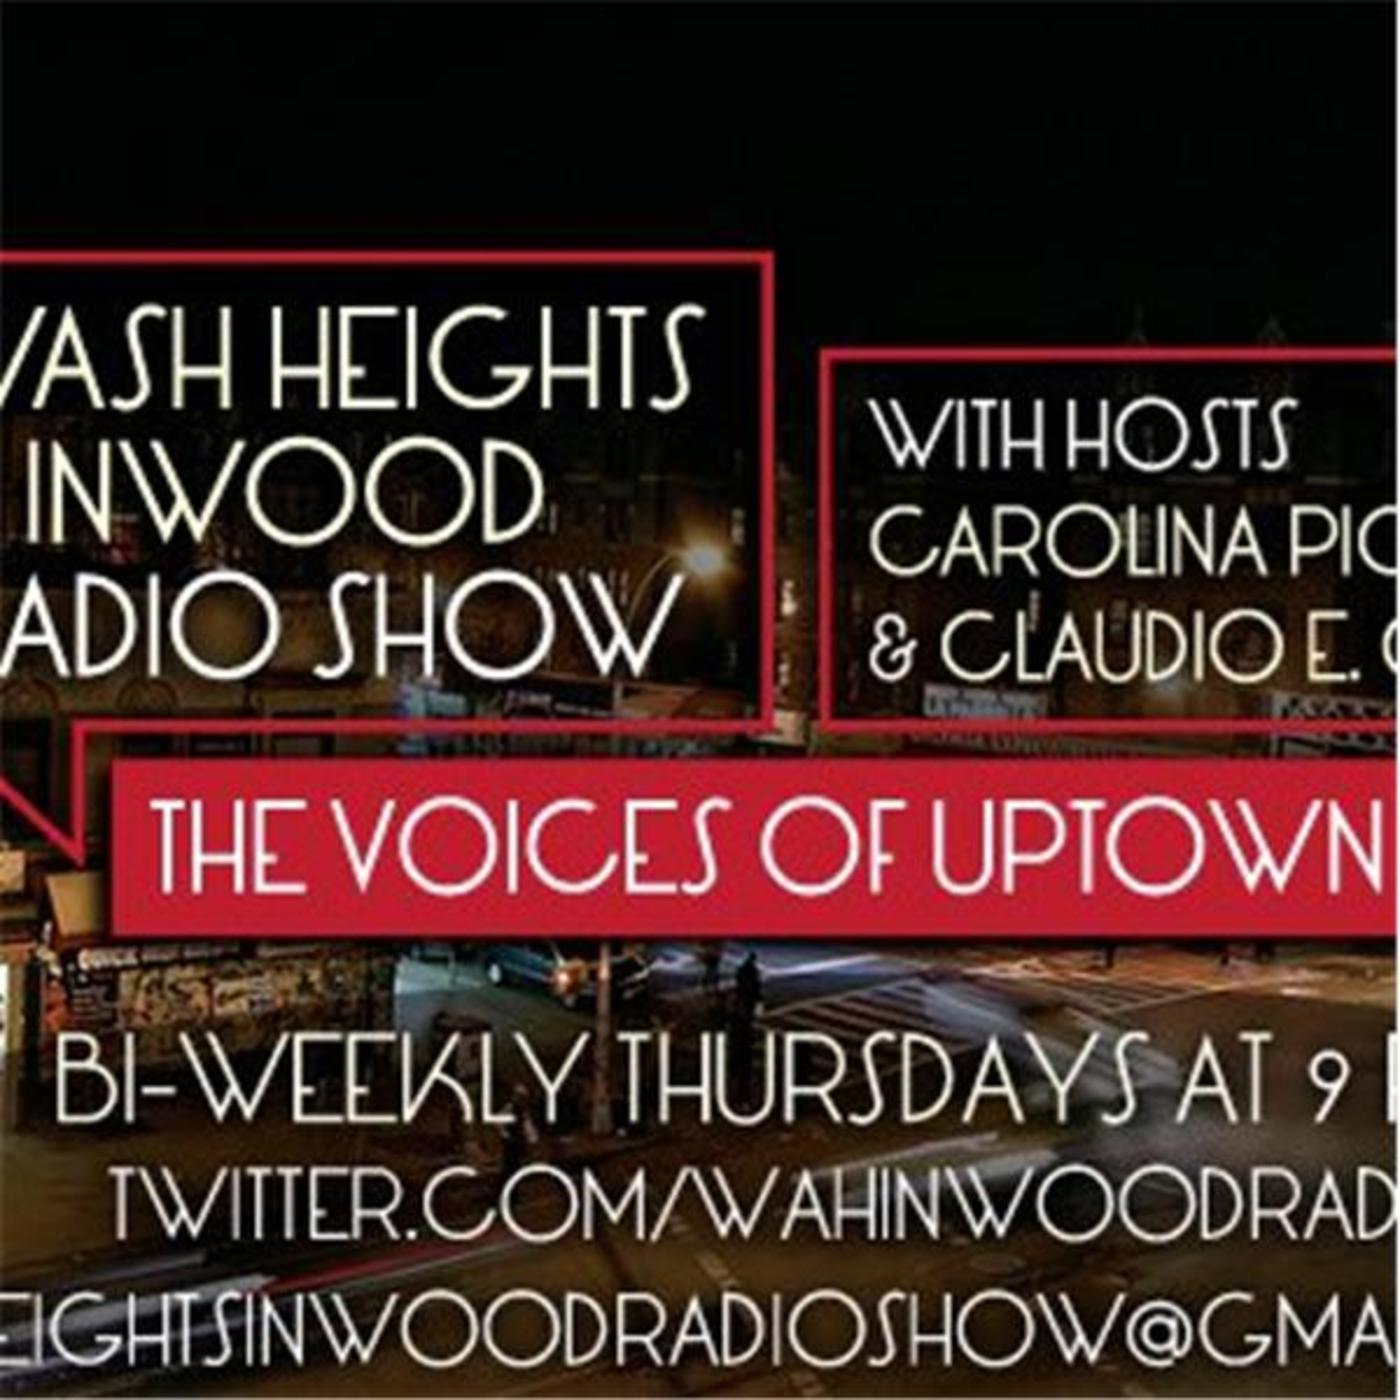 Wash Heights & Inwood Radio Show